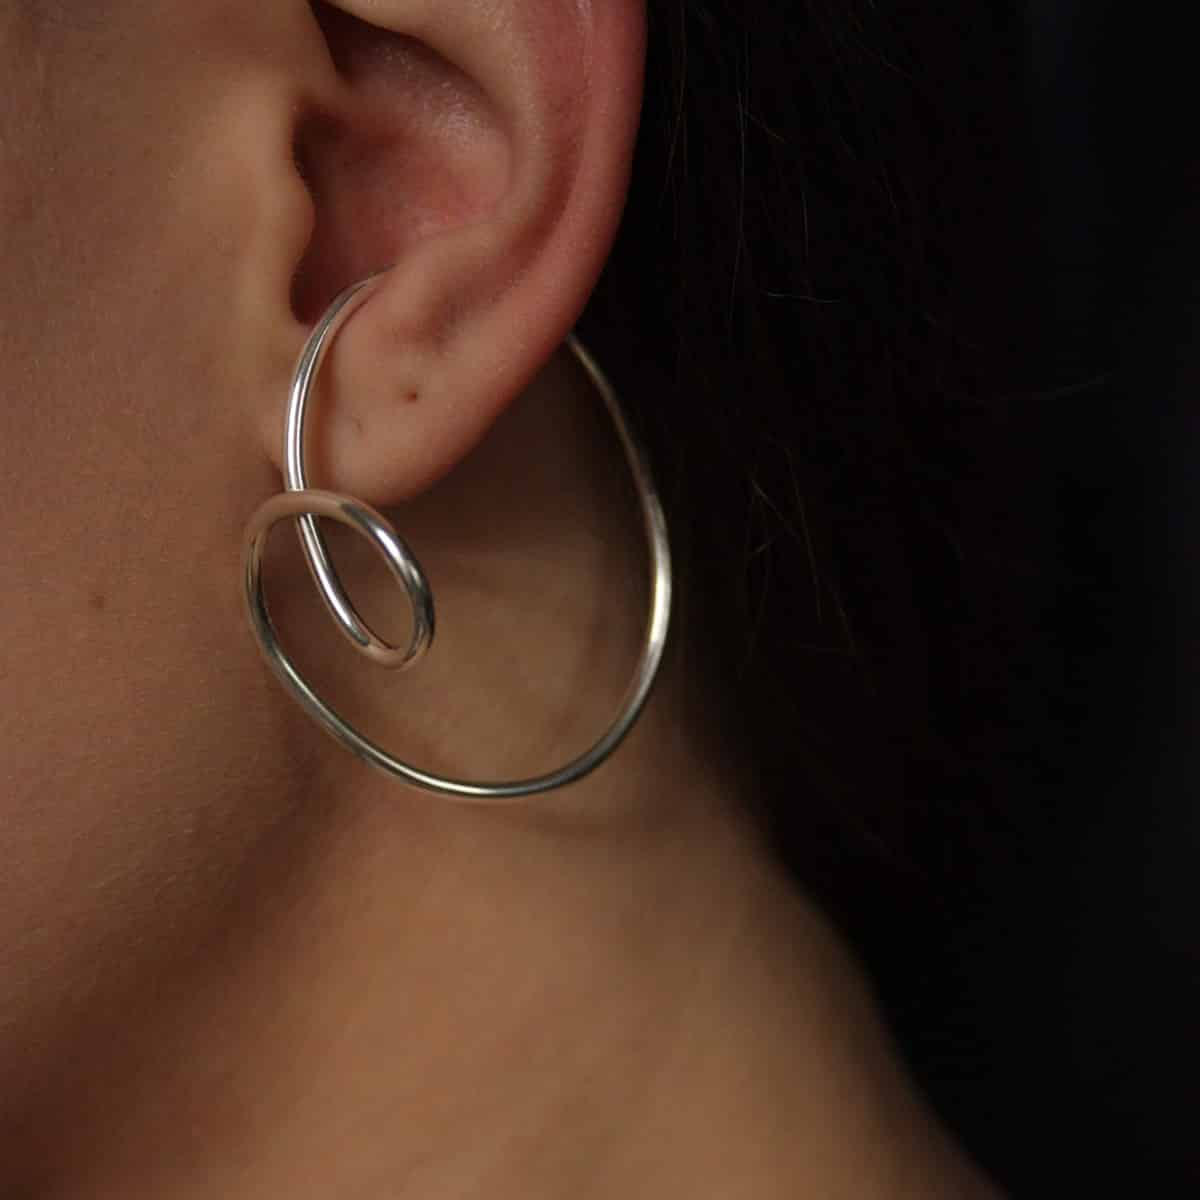 Dynasty Ear Cuffs In Recycled Argentium Silver By Little Hangings